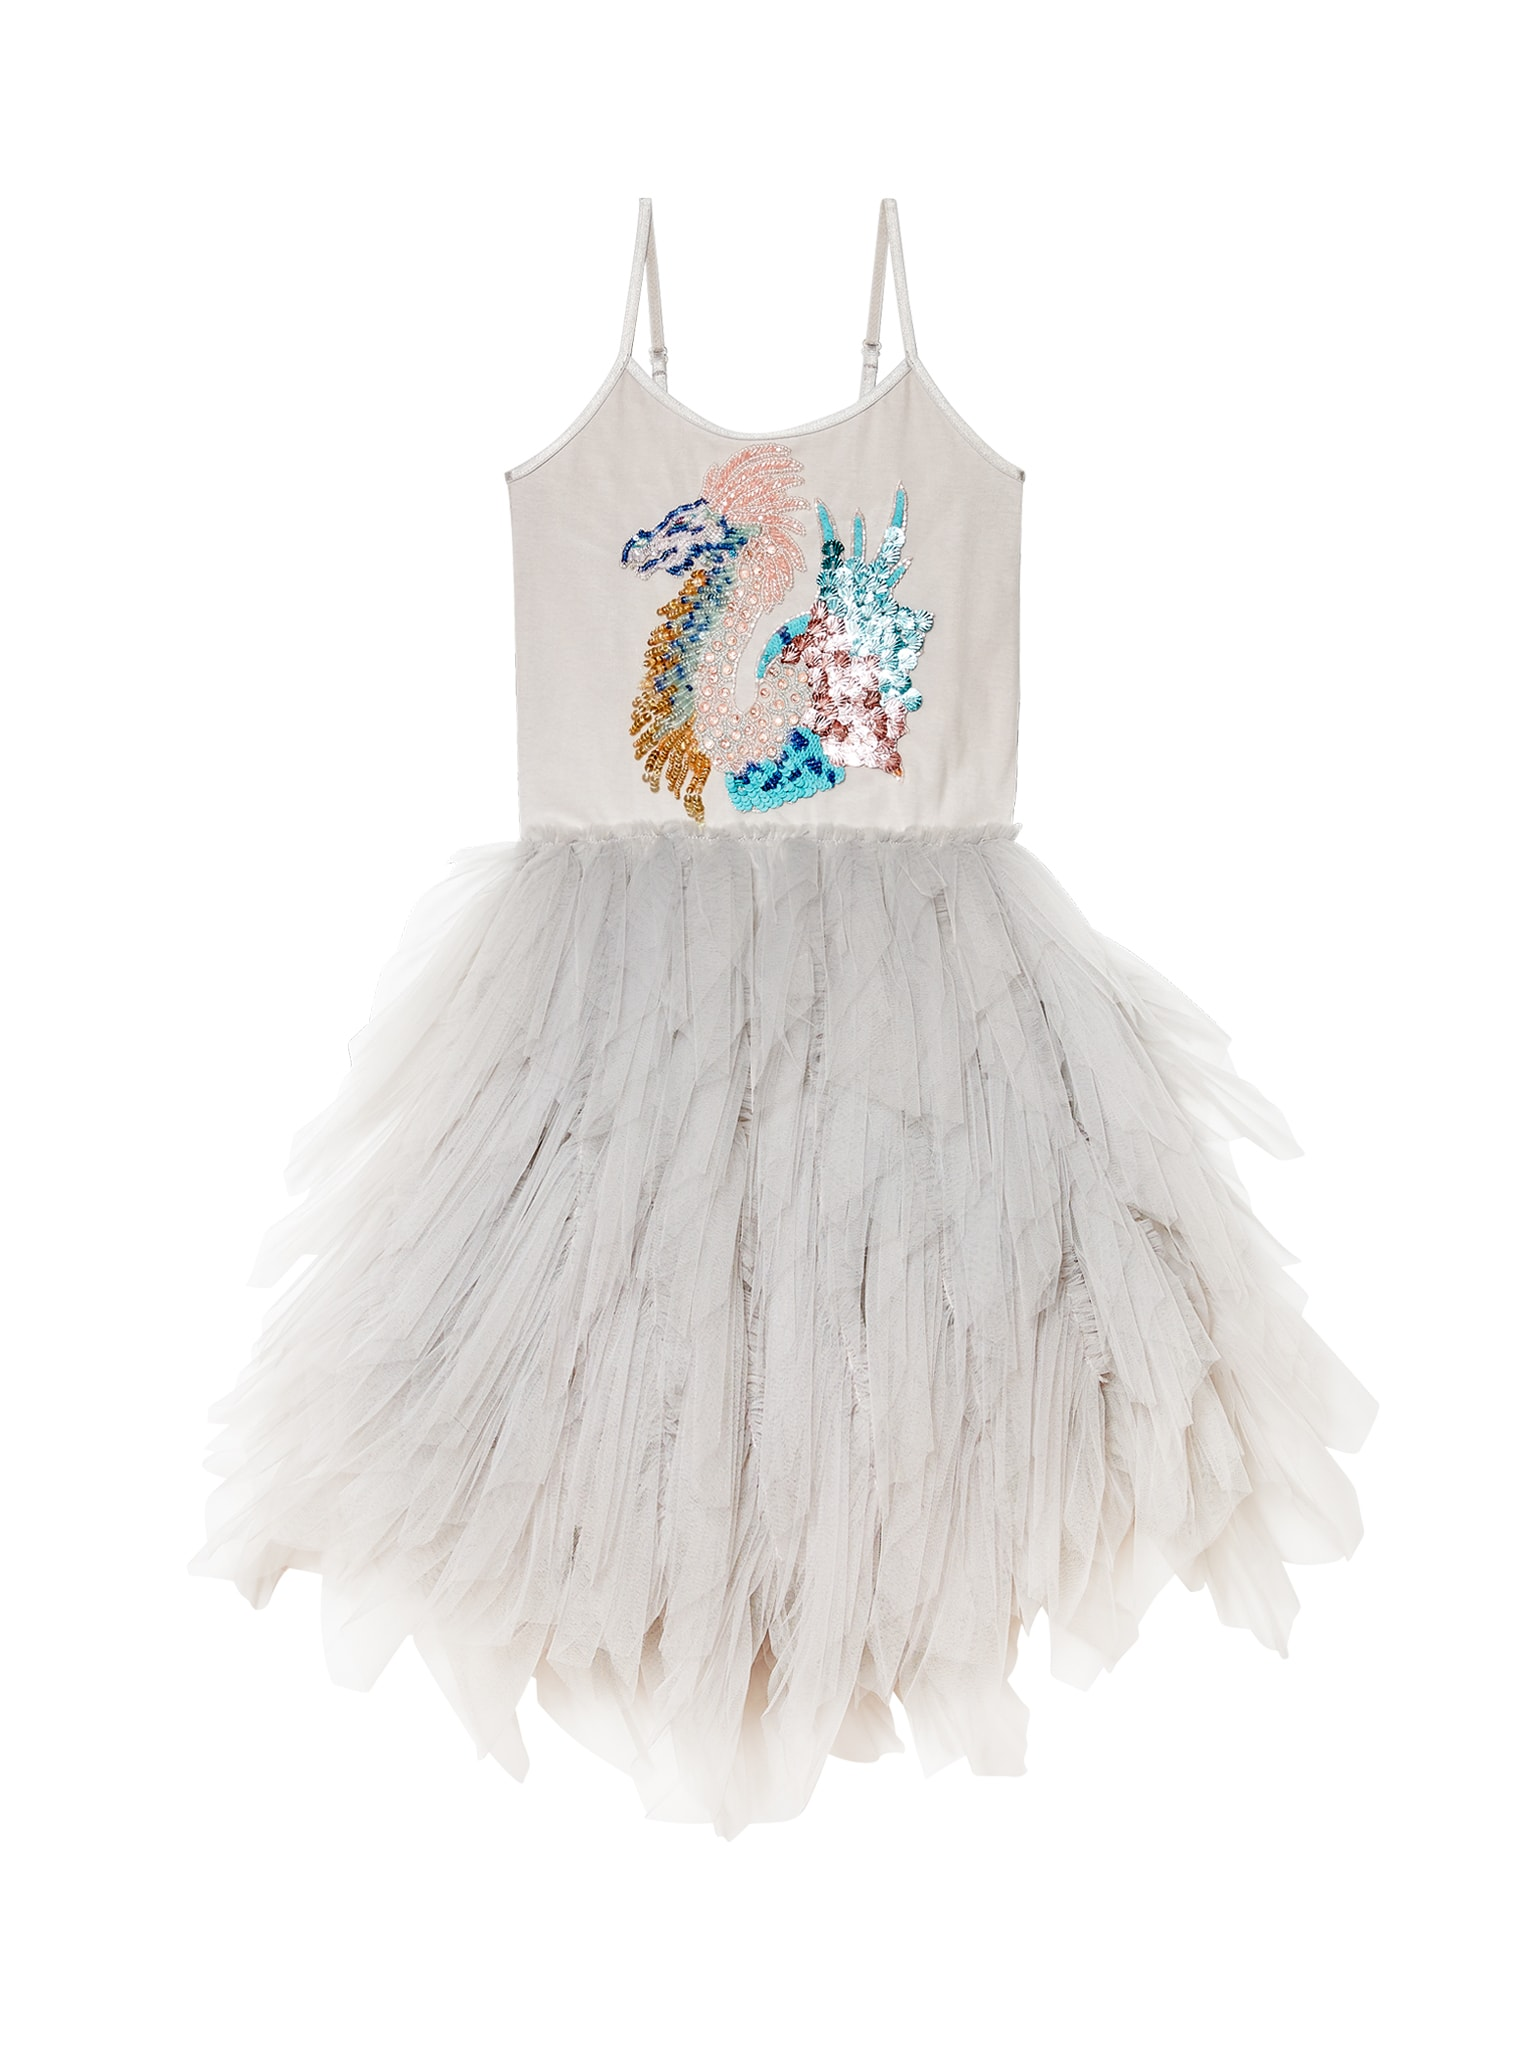 Tdm4210 splashing sea dragon tutu dress 01 min